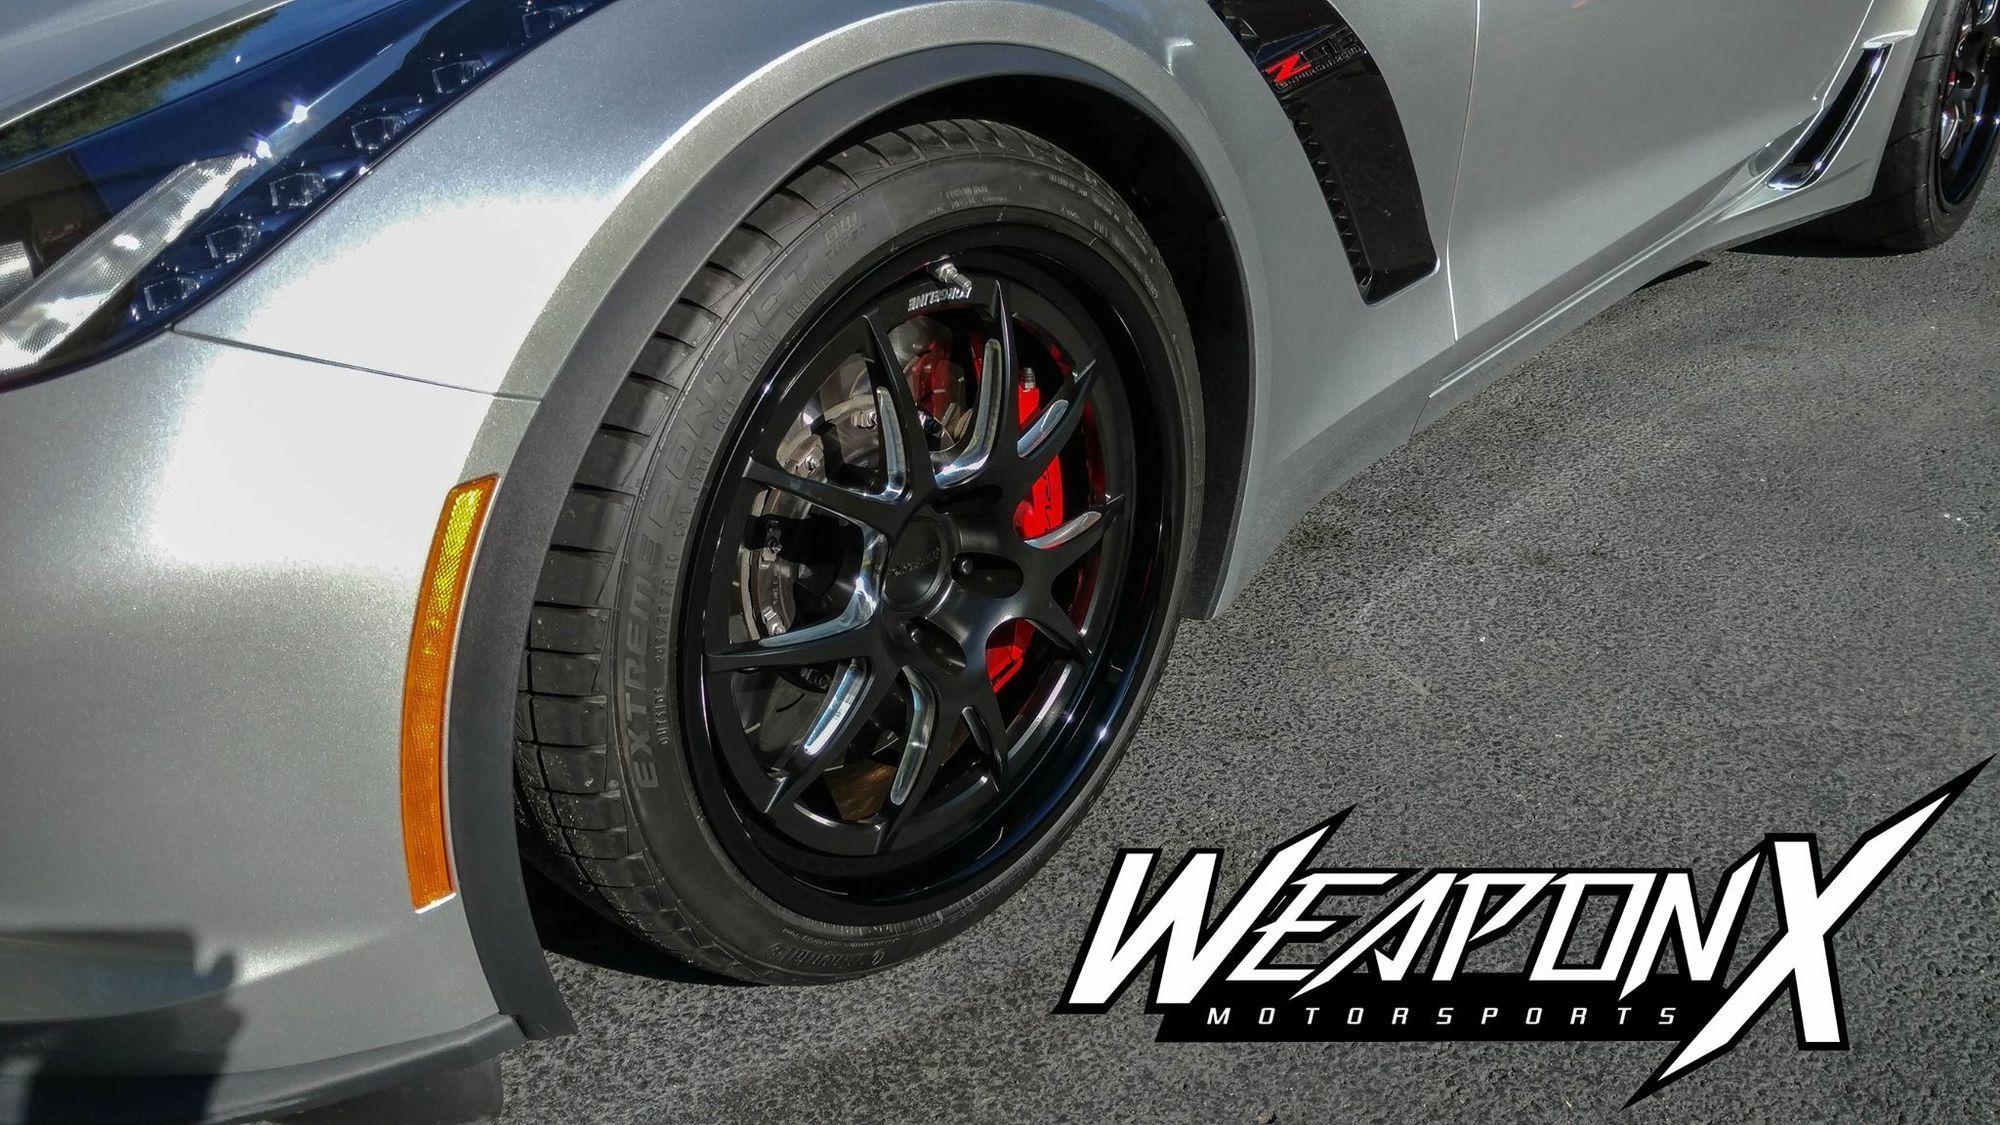 2015 Chevrolet Corvette Z06 | David C's C7 Corvette Z06 on Forgeline GA3 Wheels